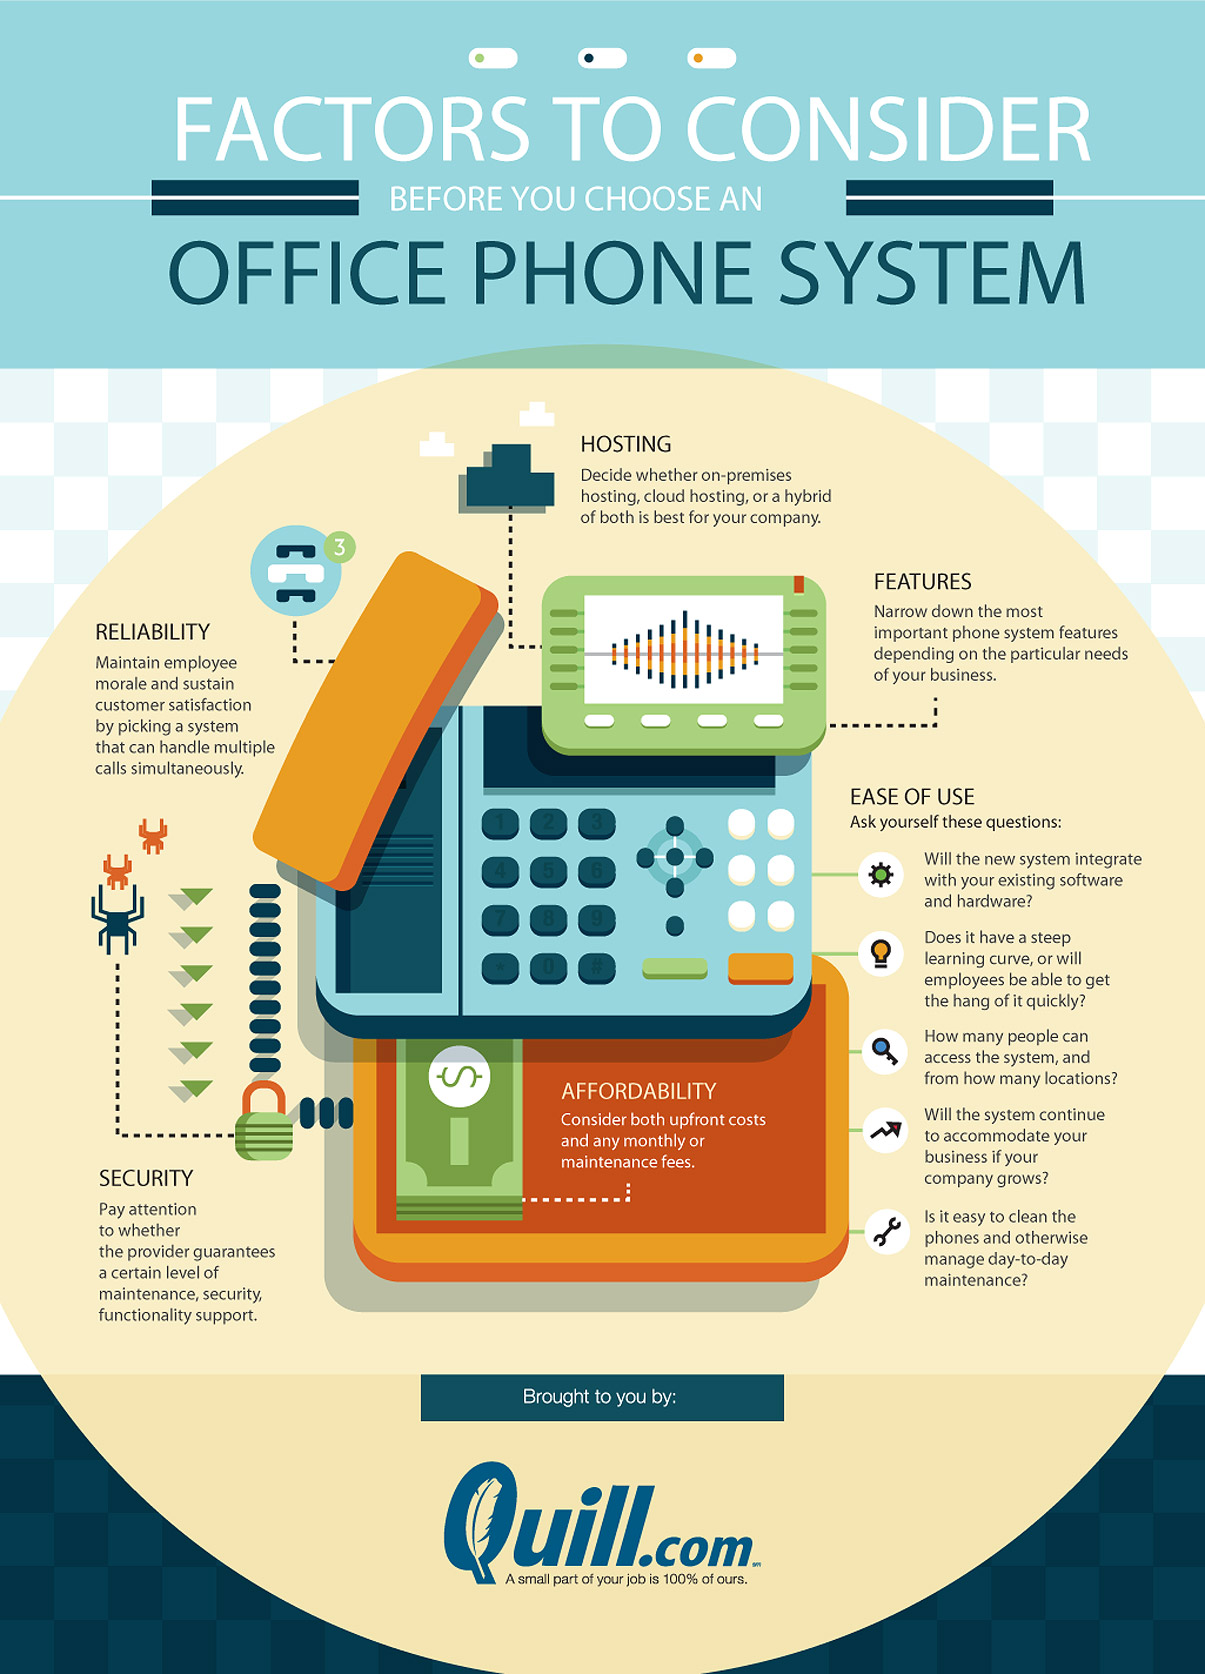 Best office phone system for small businesses